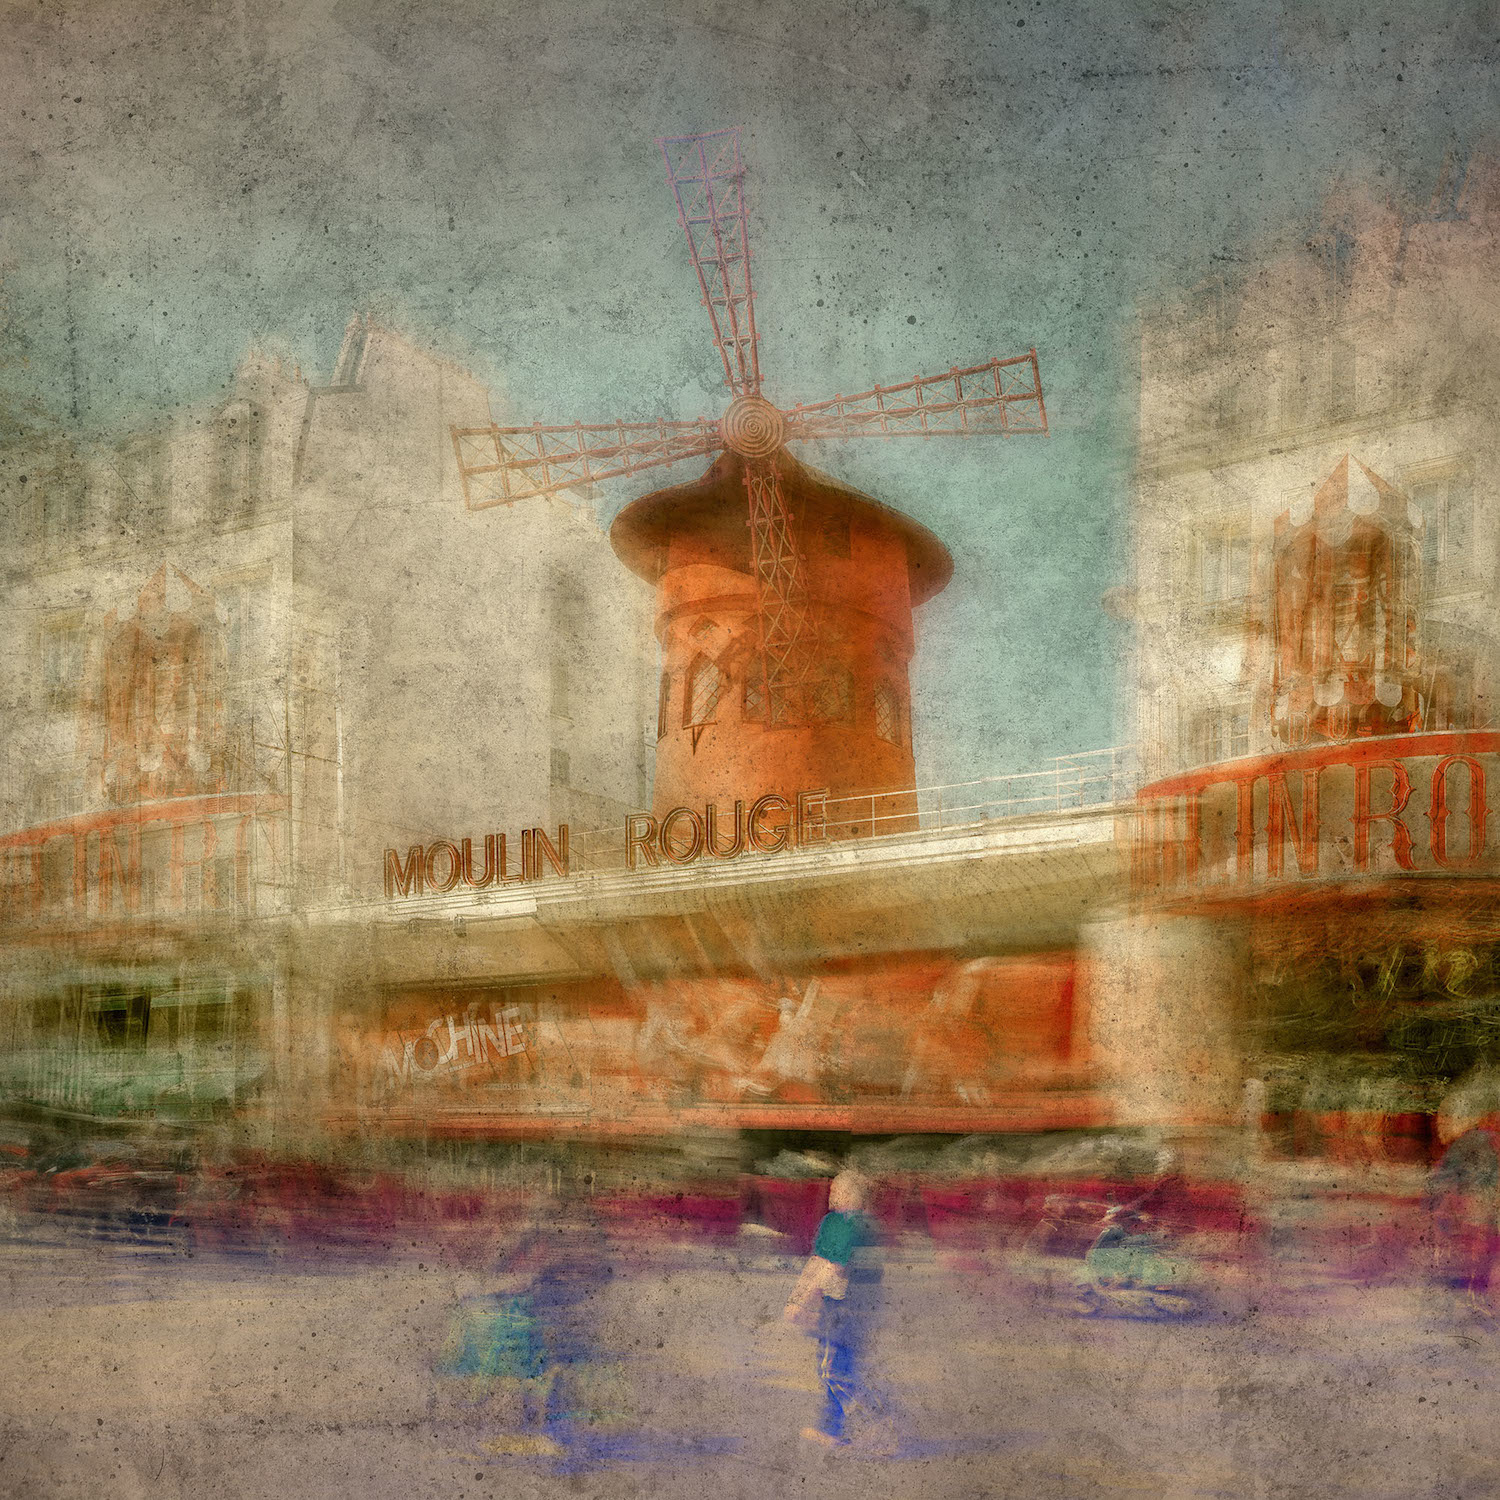 Moulin Rouge - Paul-Louis LEGER, photographe Marseille